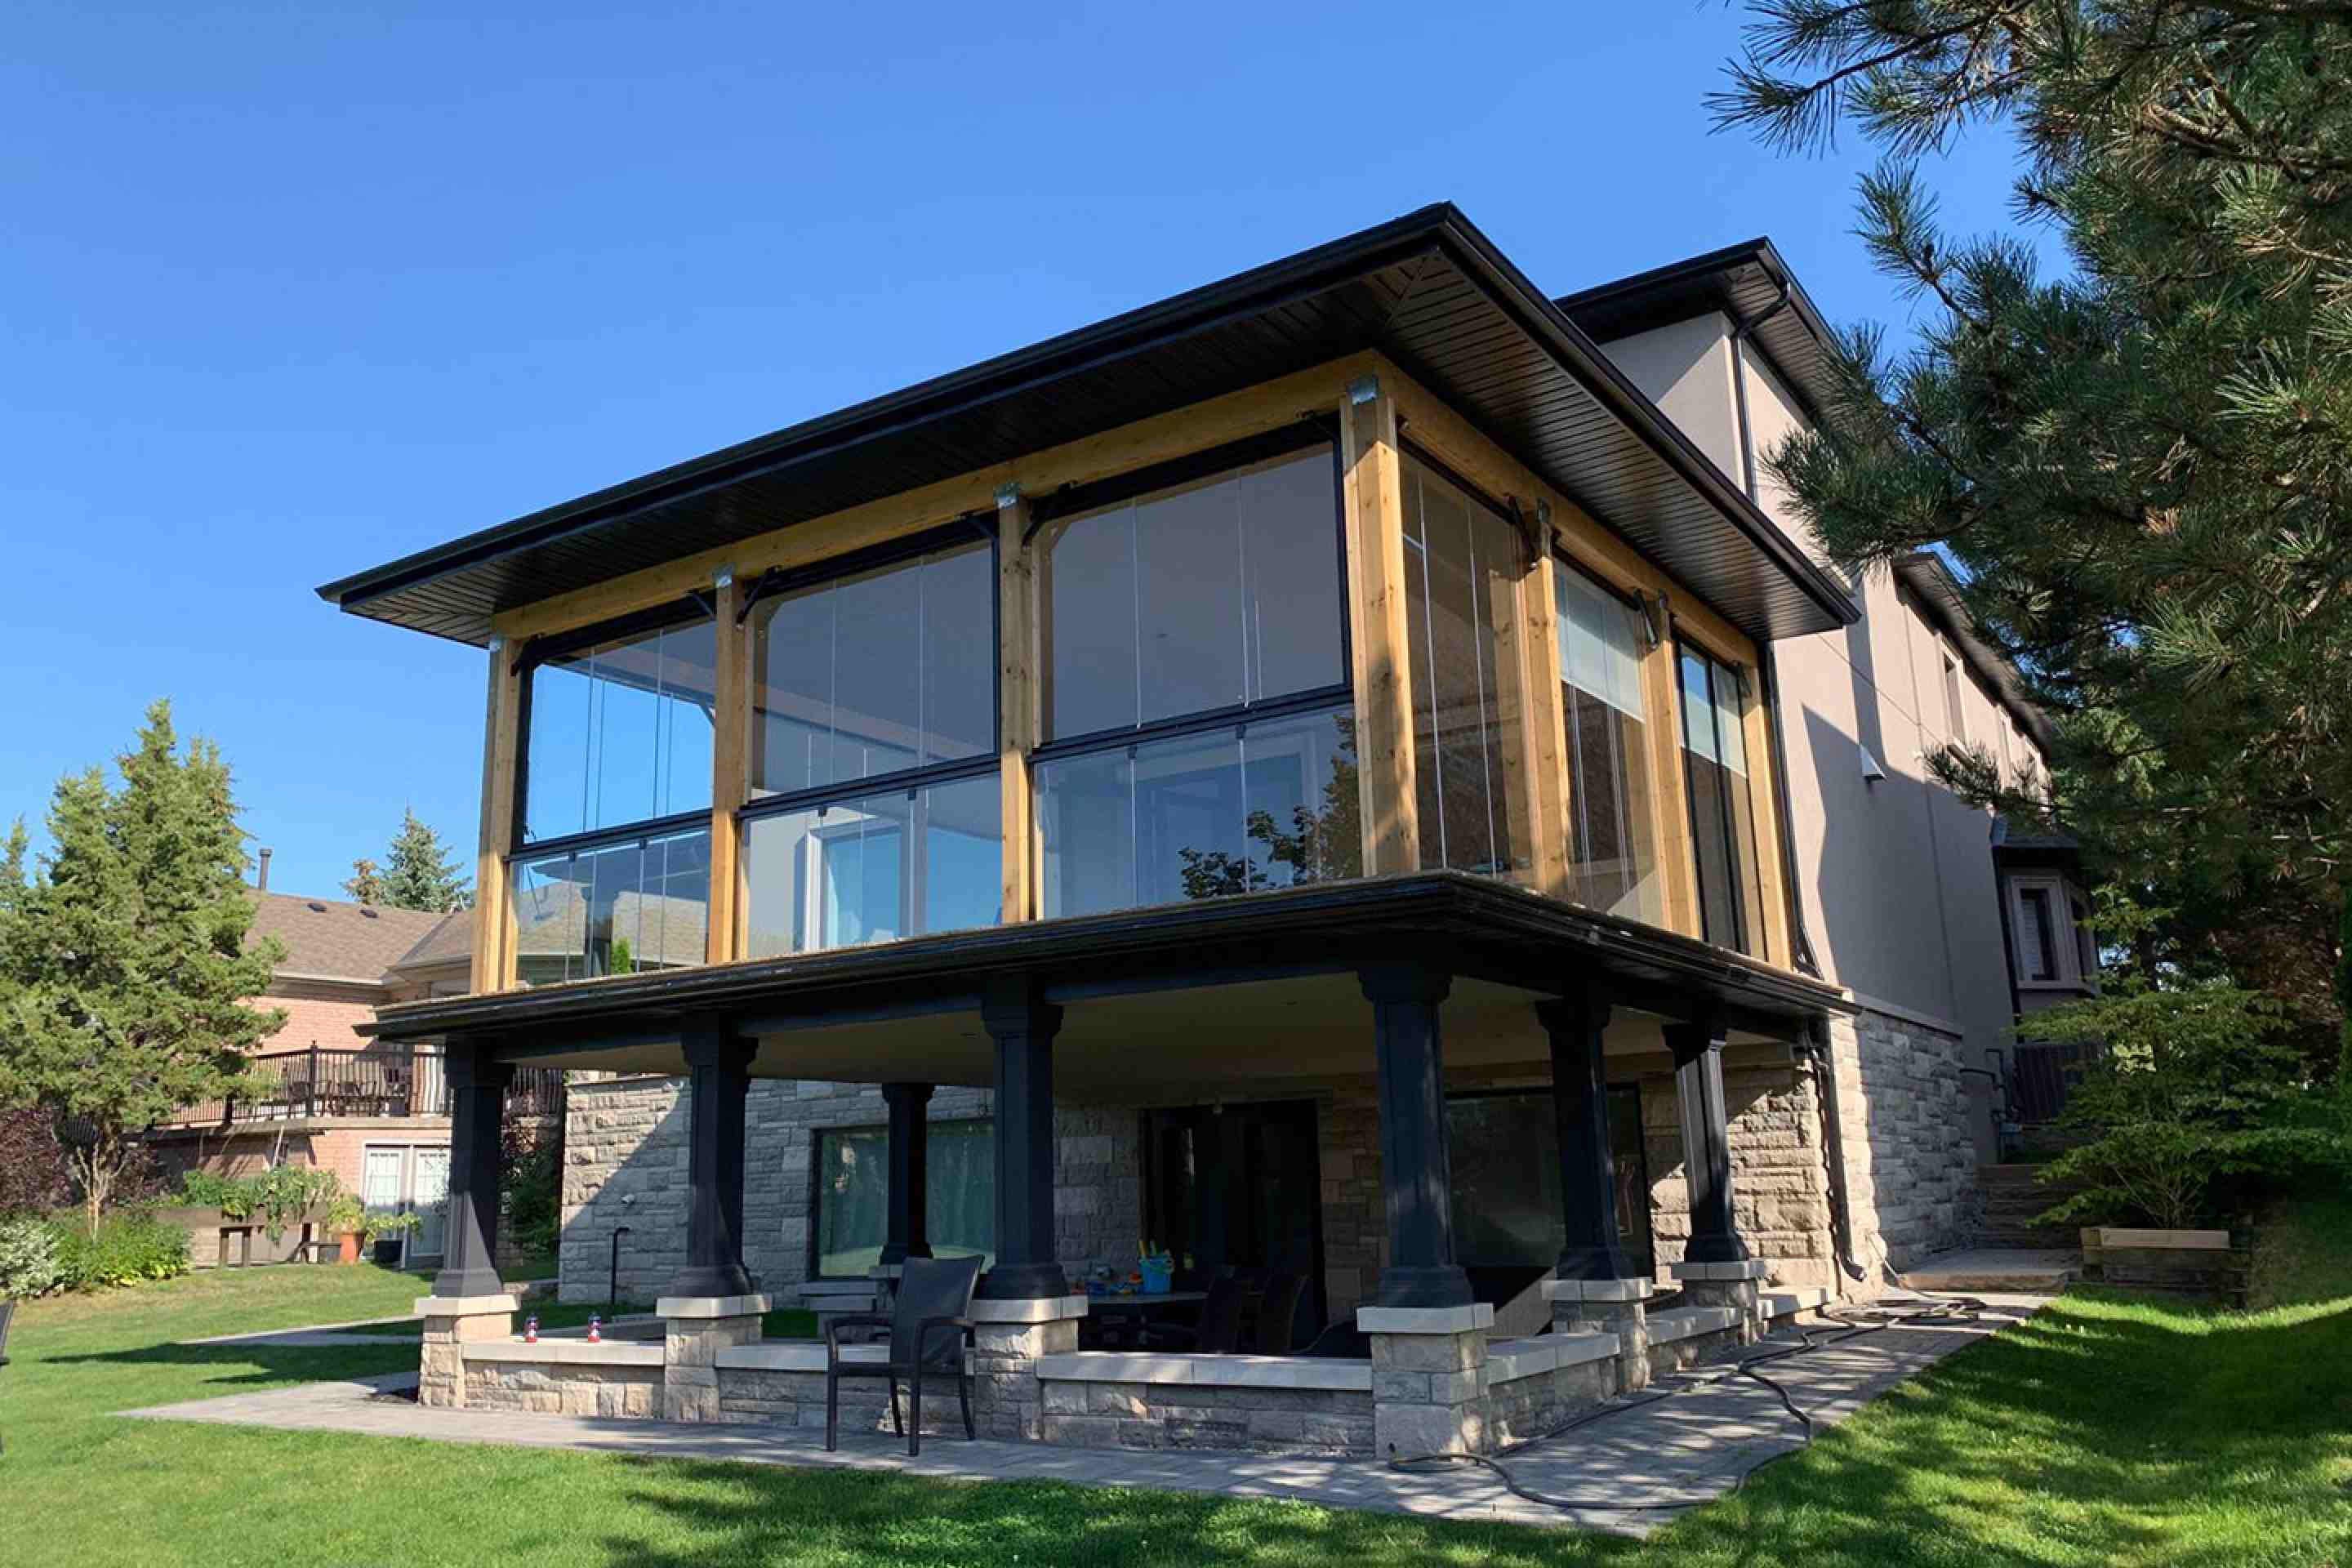 lumon canada, sunroom toronto, sunroom hamilton, sunroom vancouver, sunroom in canada, glass, retractable glass, outdoor enclosure, balcony glass in canada, balcony enclosure, Balcony glass toronto, balcony glass hamilton, balcony glass vancouver